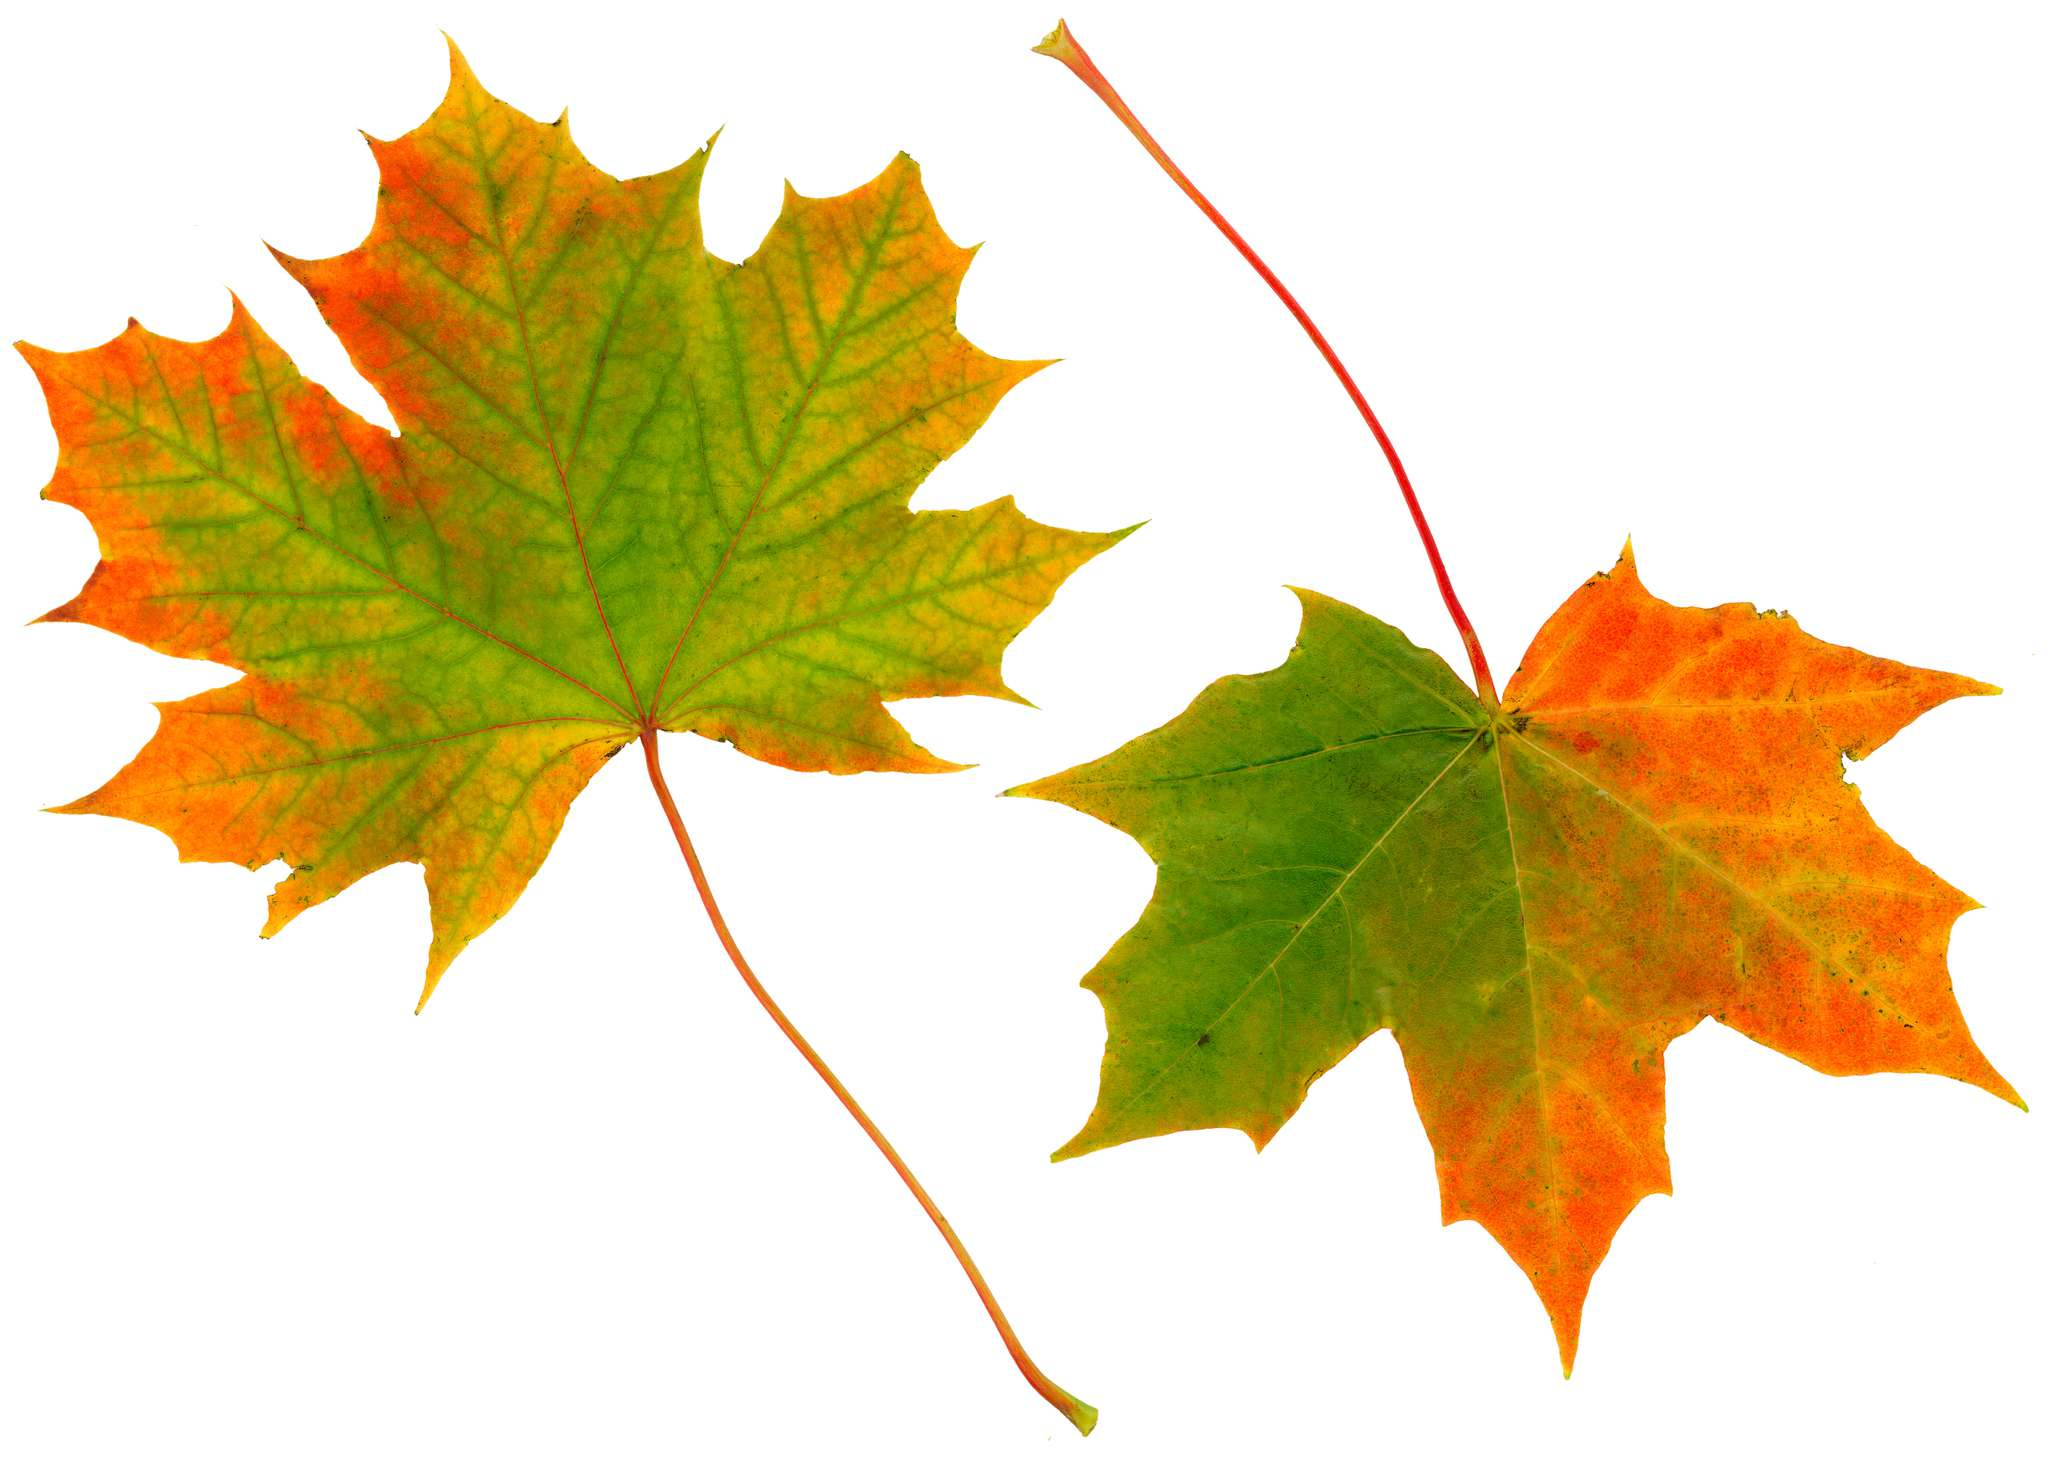 Two maple leaves changing colour from green to red.